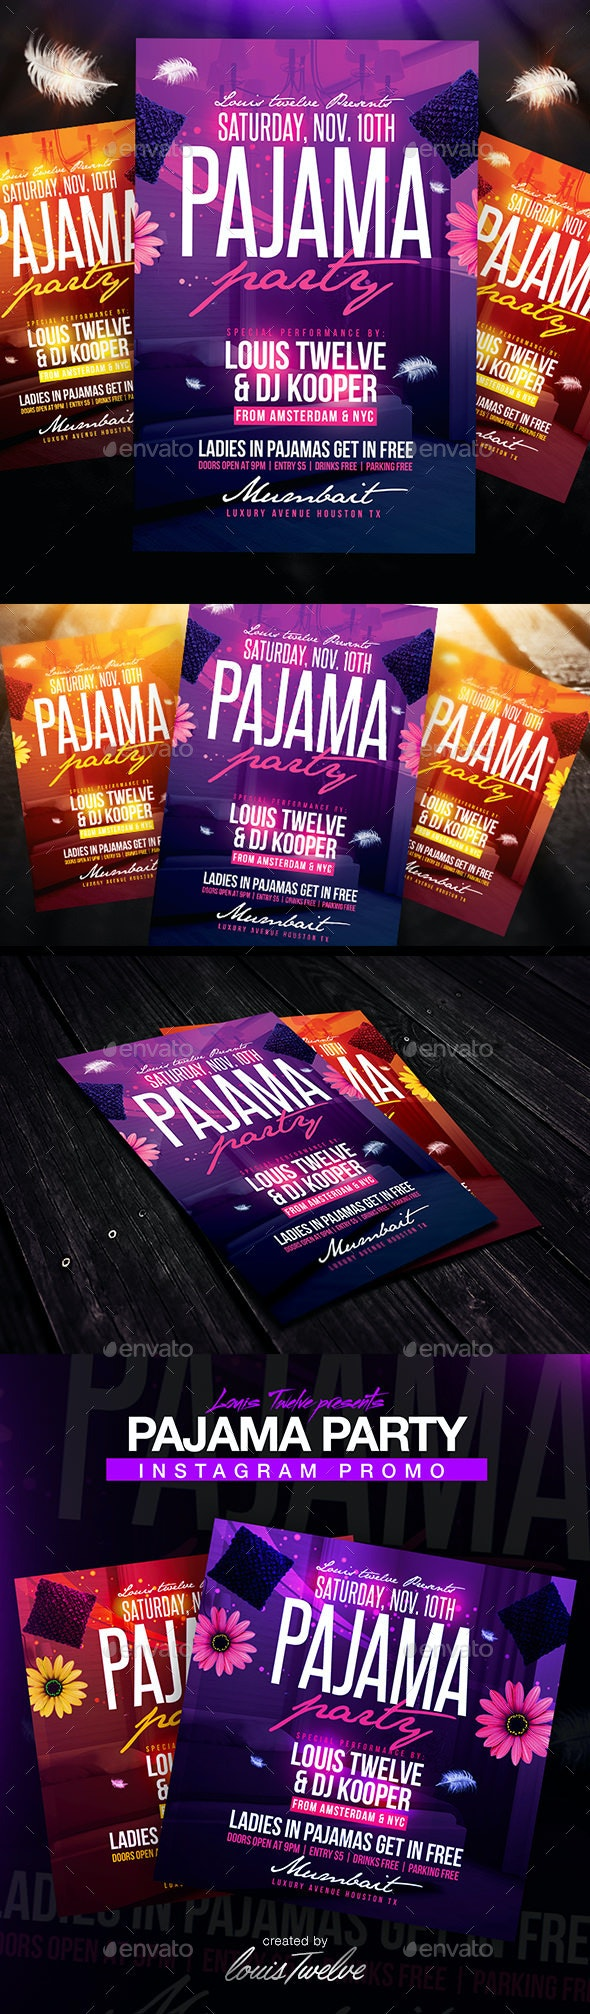 Pajama Party Flyer + Instagram Promo - Clubs & Parties Events